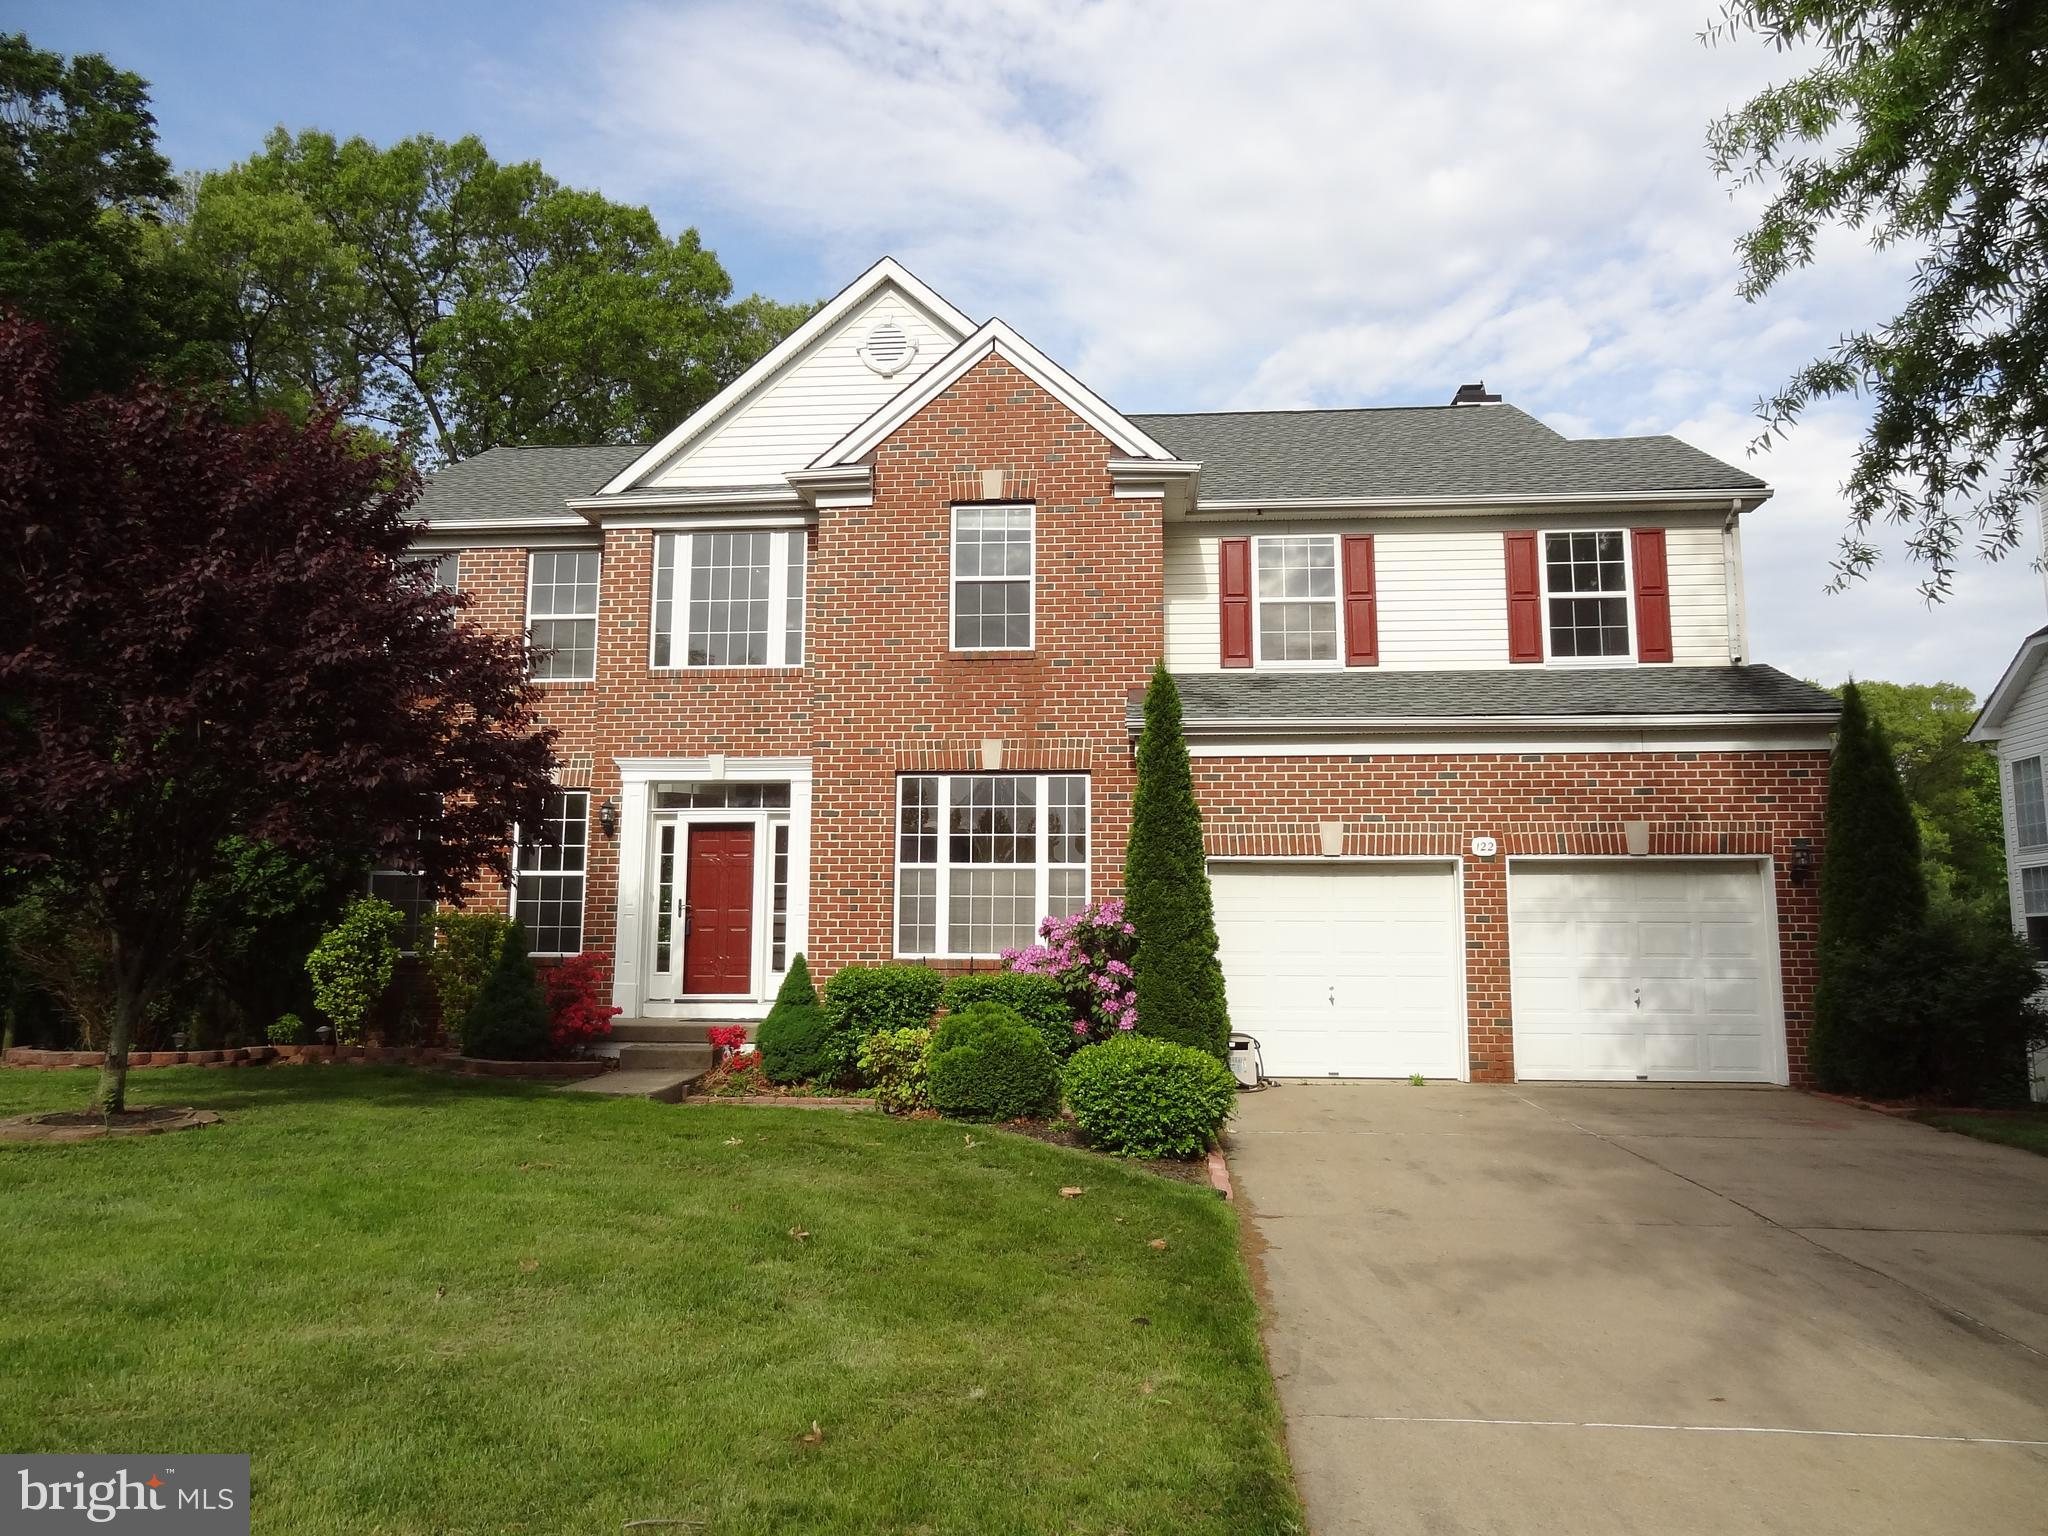 122 FAIRBROOK DRIVE, BORDENTOWN, NJ 08505